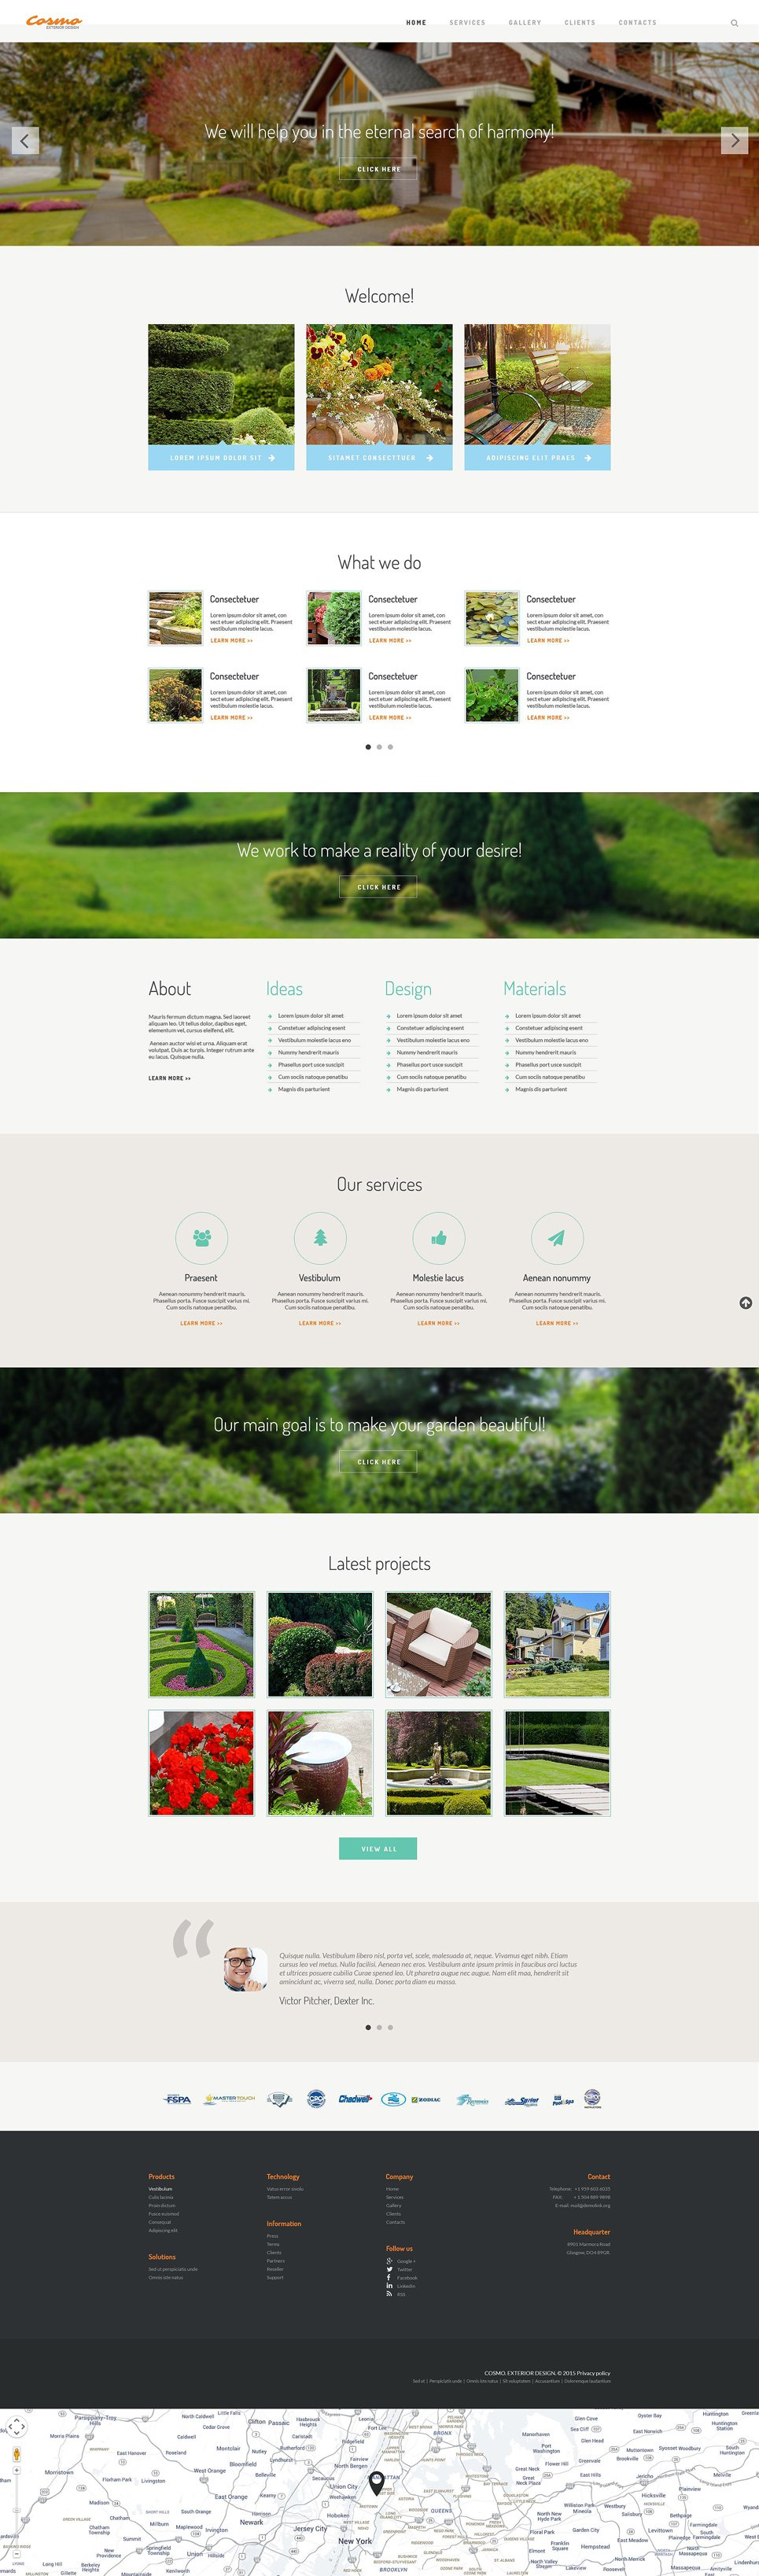 Exterior design responsive website template 54566 by wt for Exterior design website templates